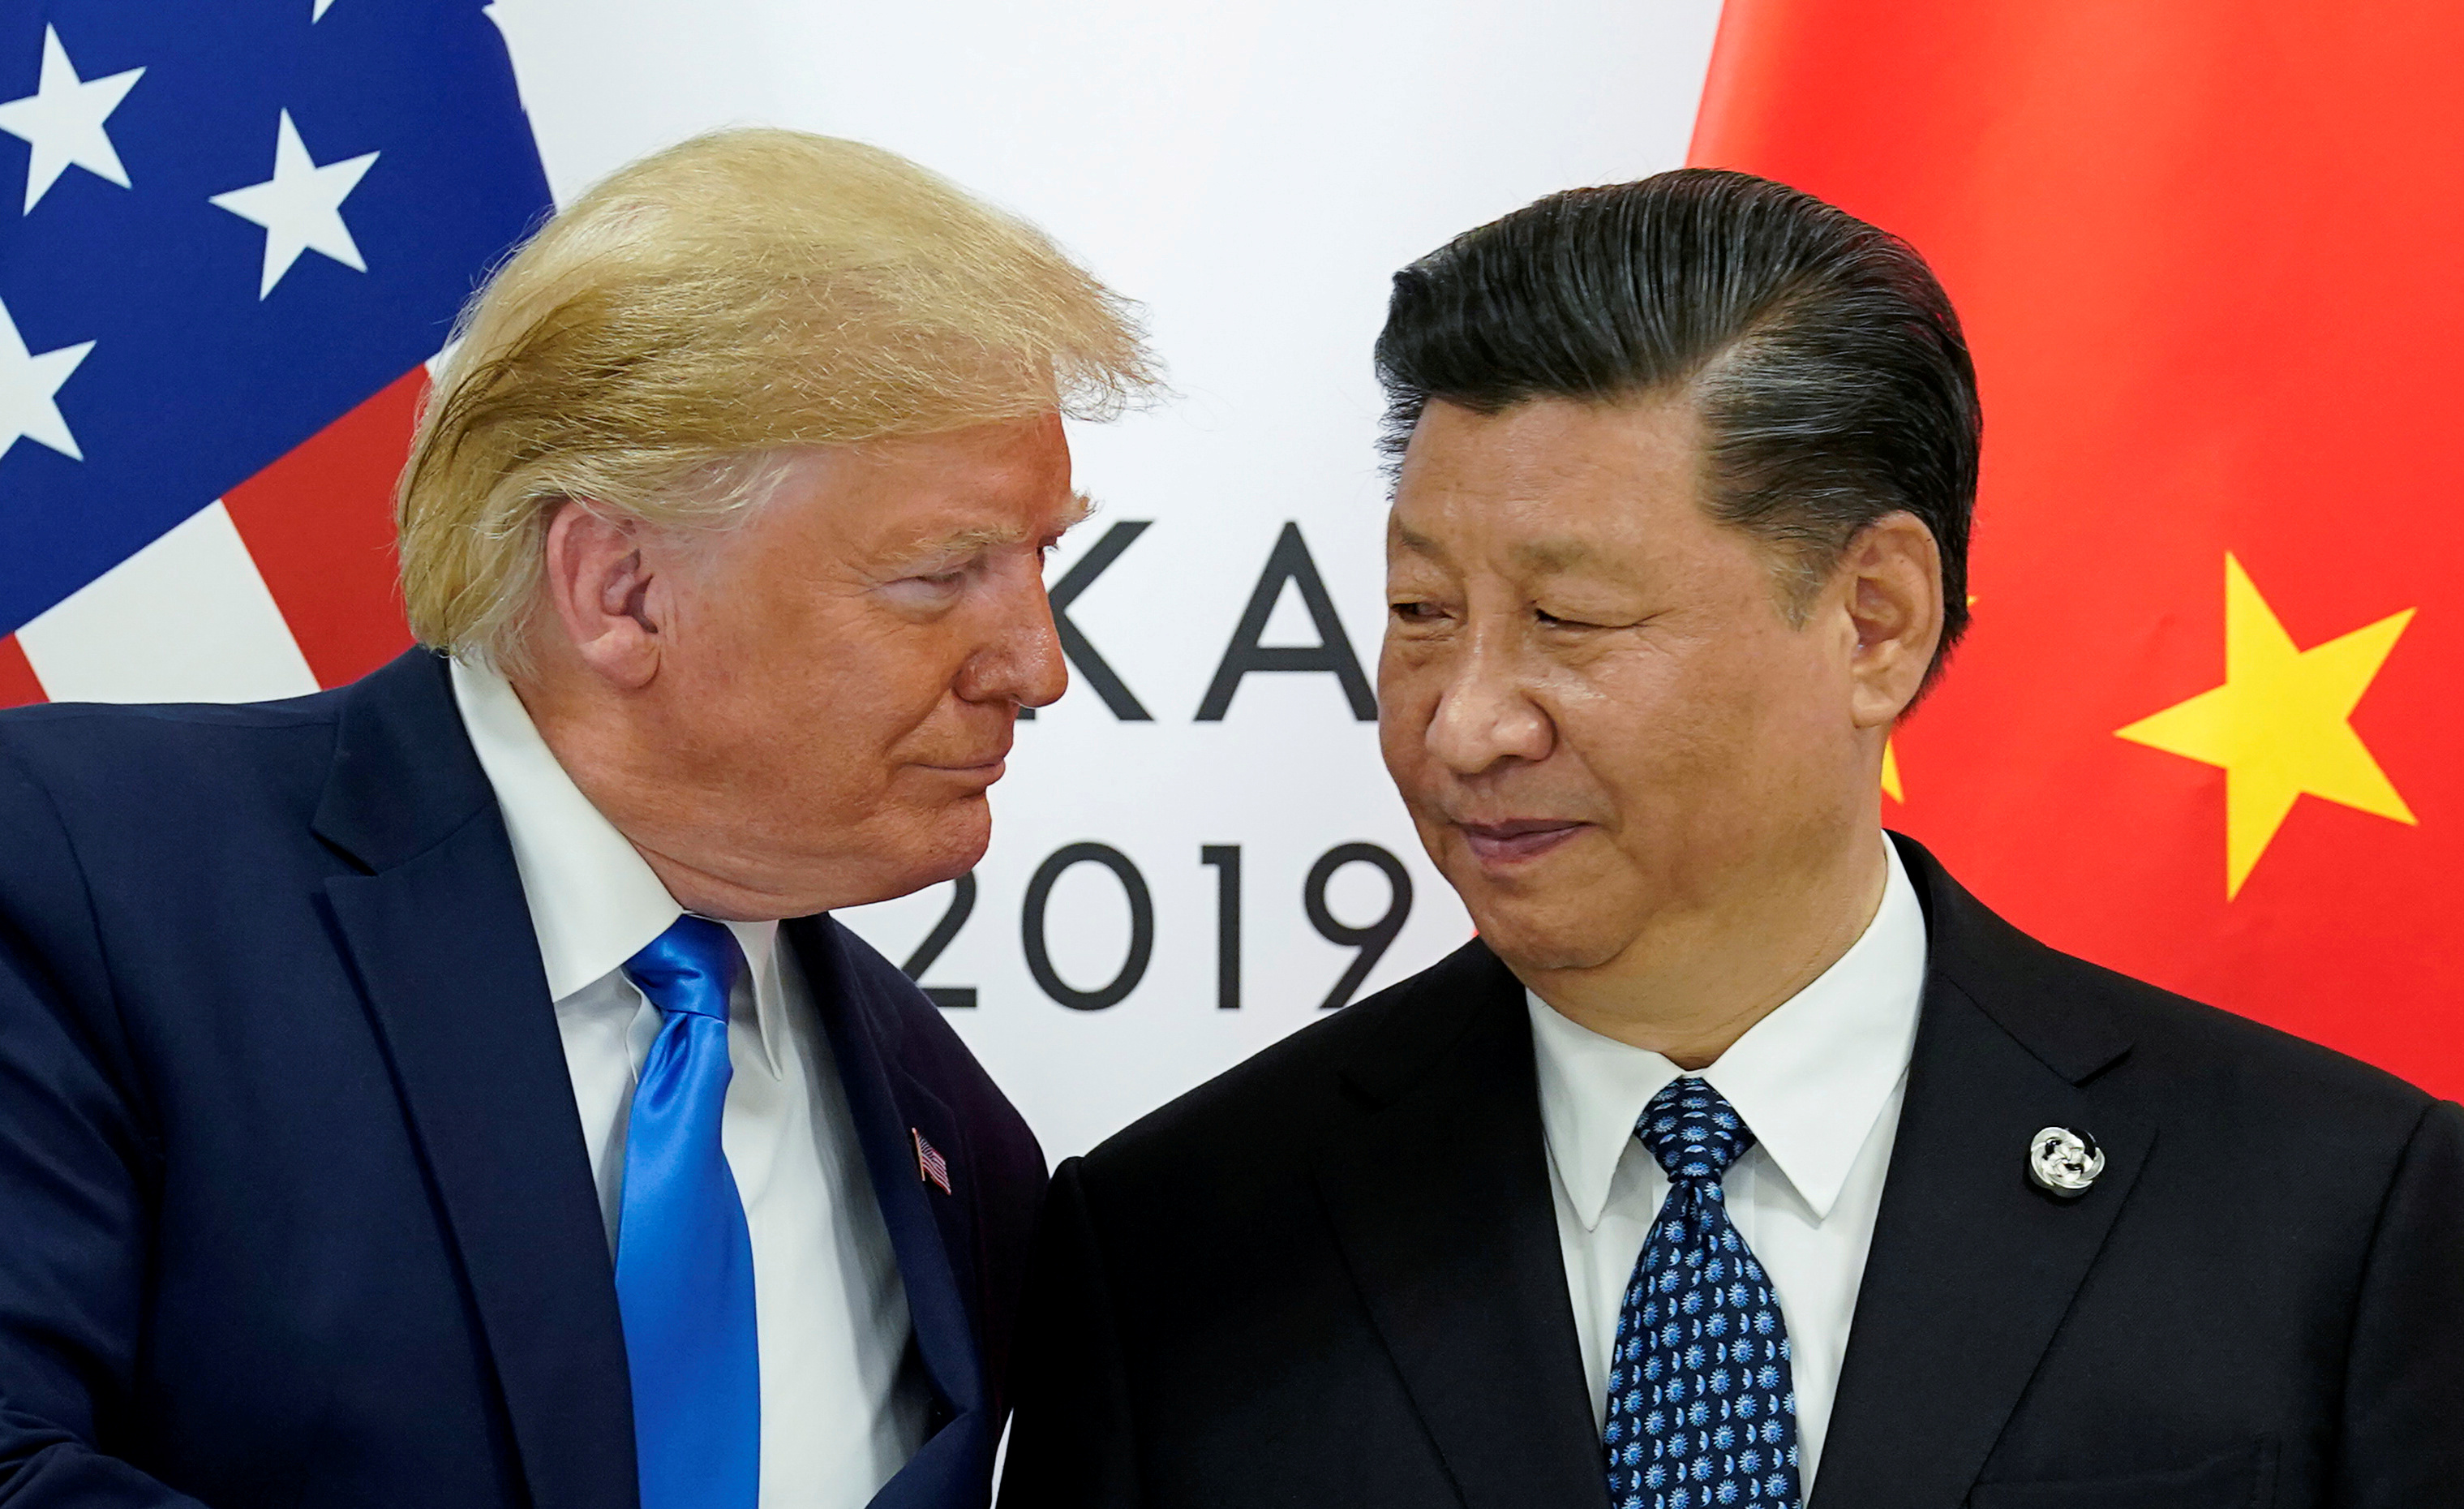 FILE PHOTO: U.S. President Donald Trump meets with China's President Xi Jinping at the start of their bilateral meeting at the G20 leaders summit in Osaka, Japan, June 29, 2019. REUTERS/Kevin Lamarque